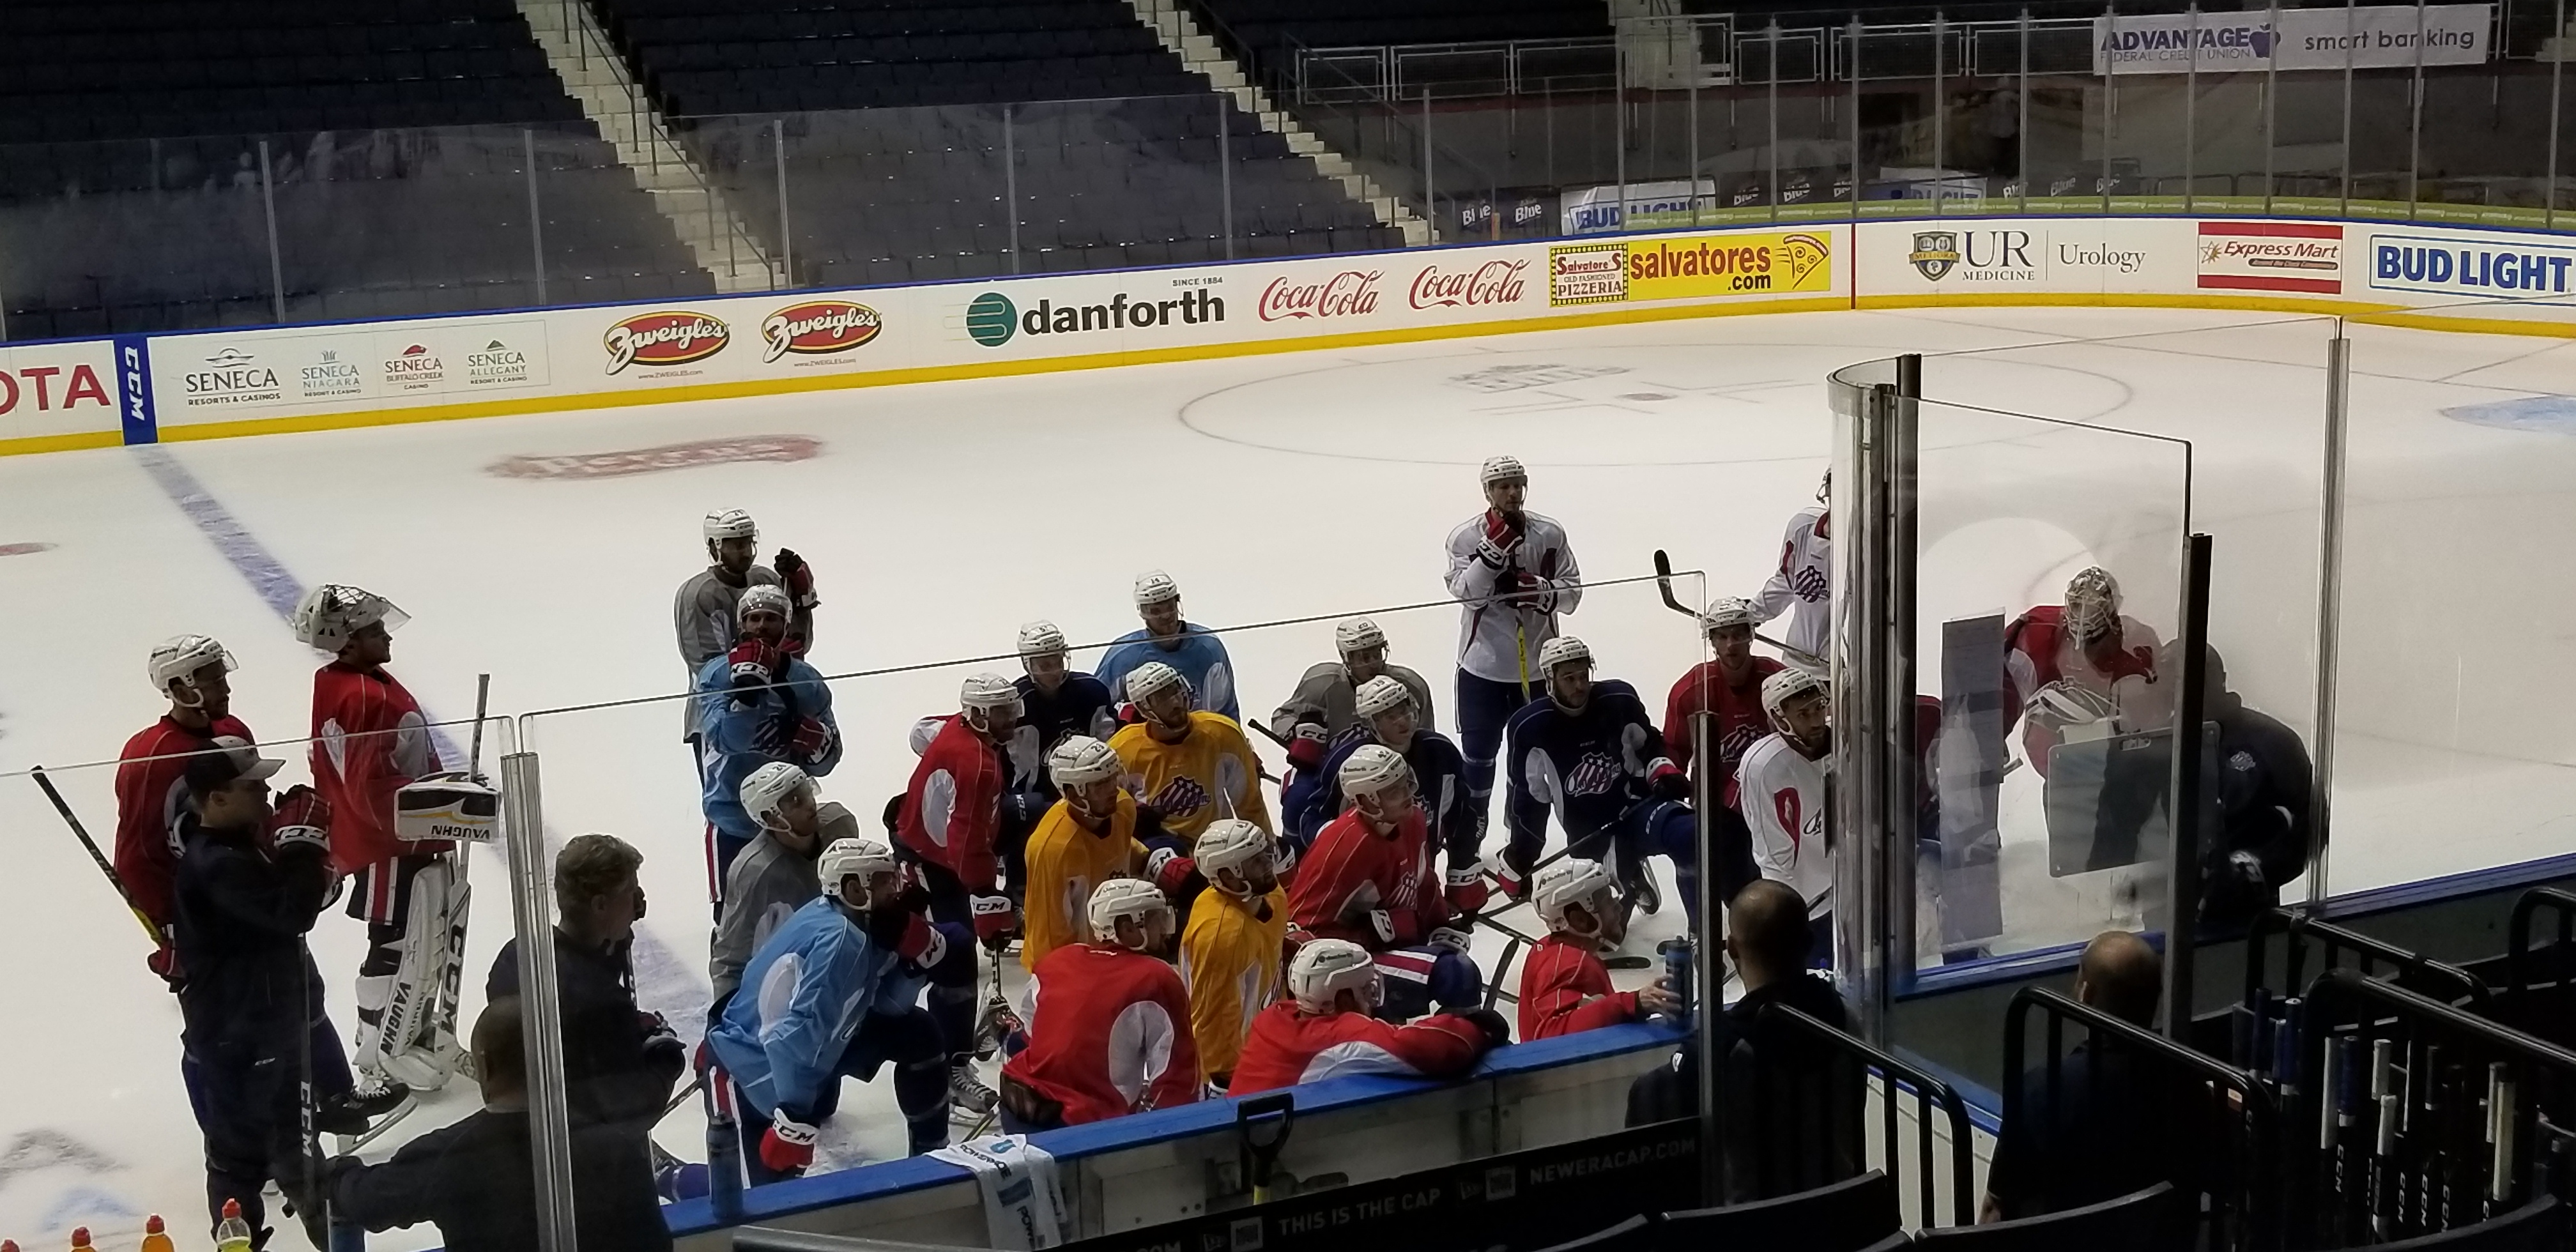 Chris Taylor on WGR550 Talking Systems, Tasks and Player Development